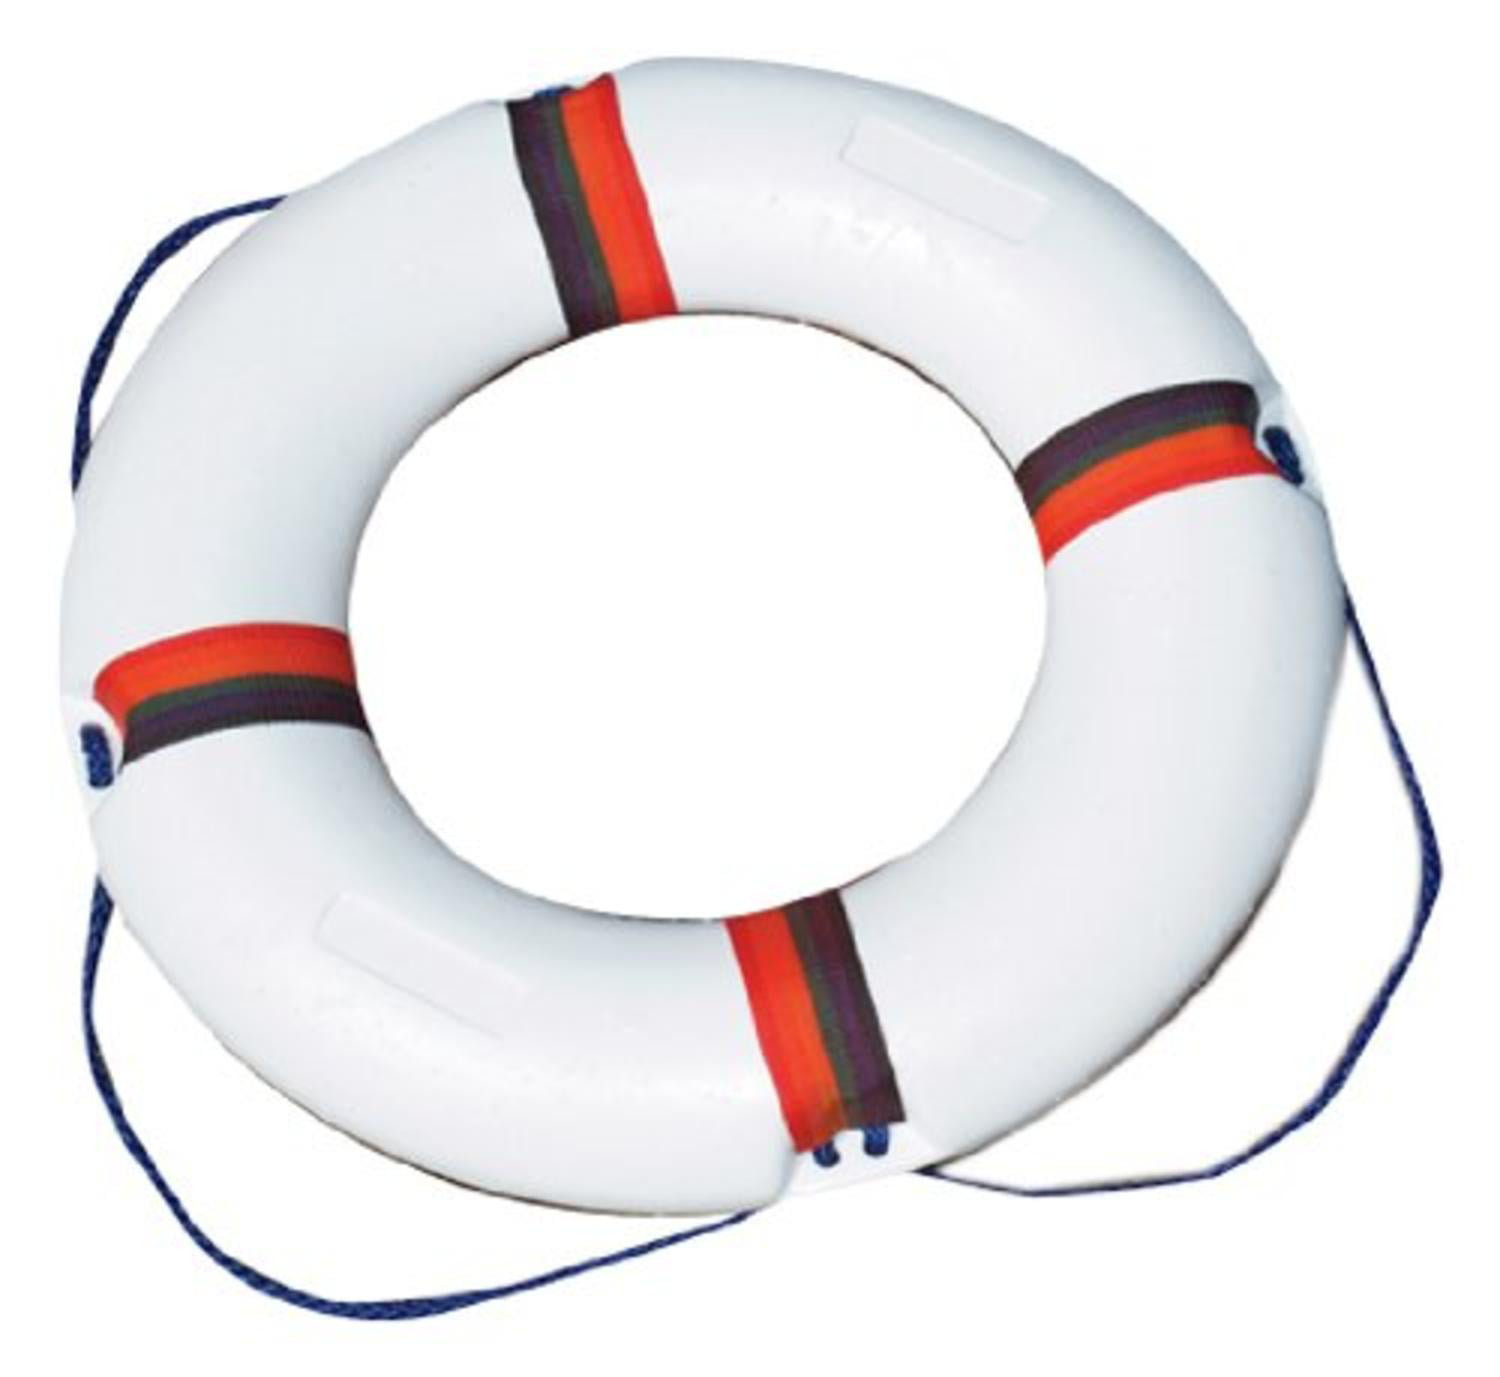 inflatable outdoor pool sports item flotation swimming rings life relefree from open buoy in floats water safety for